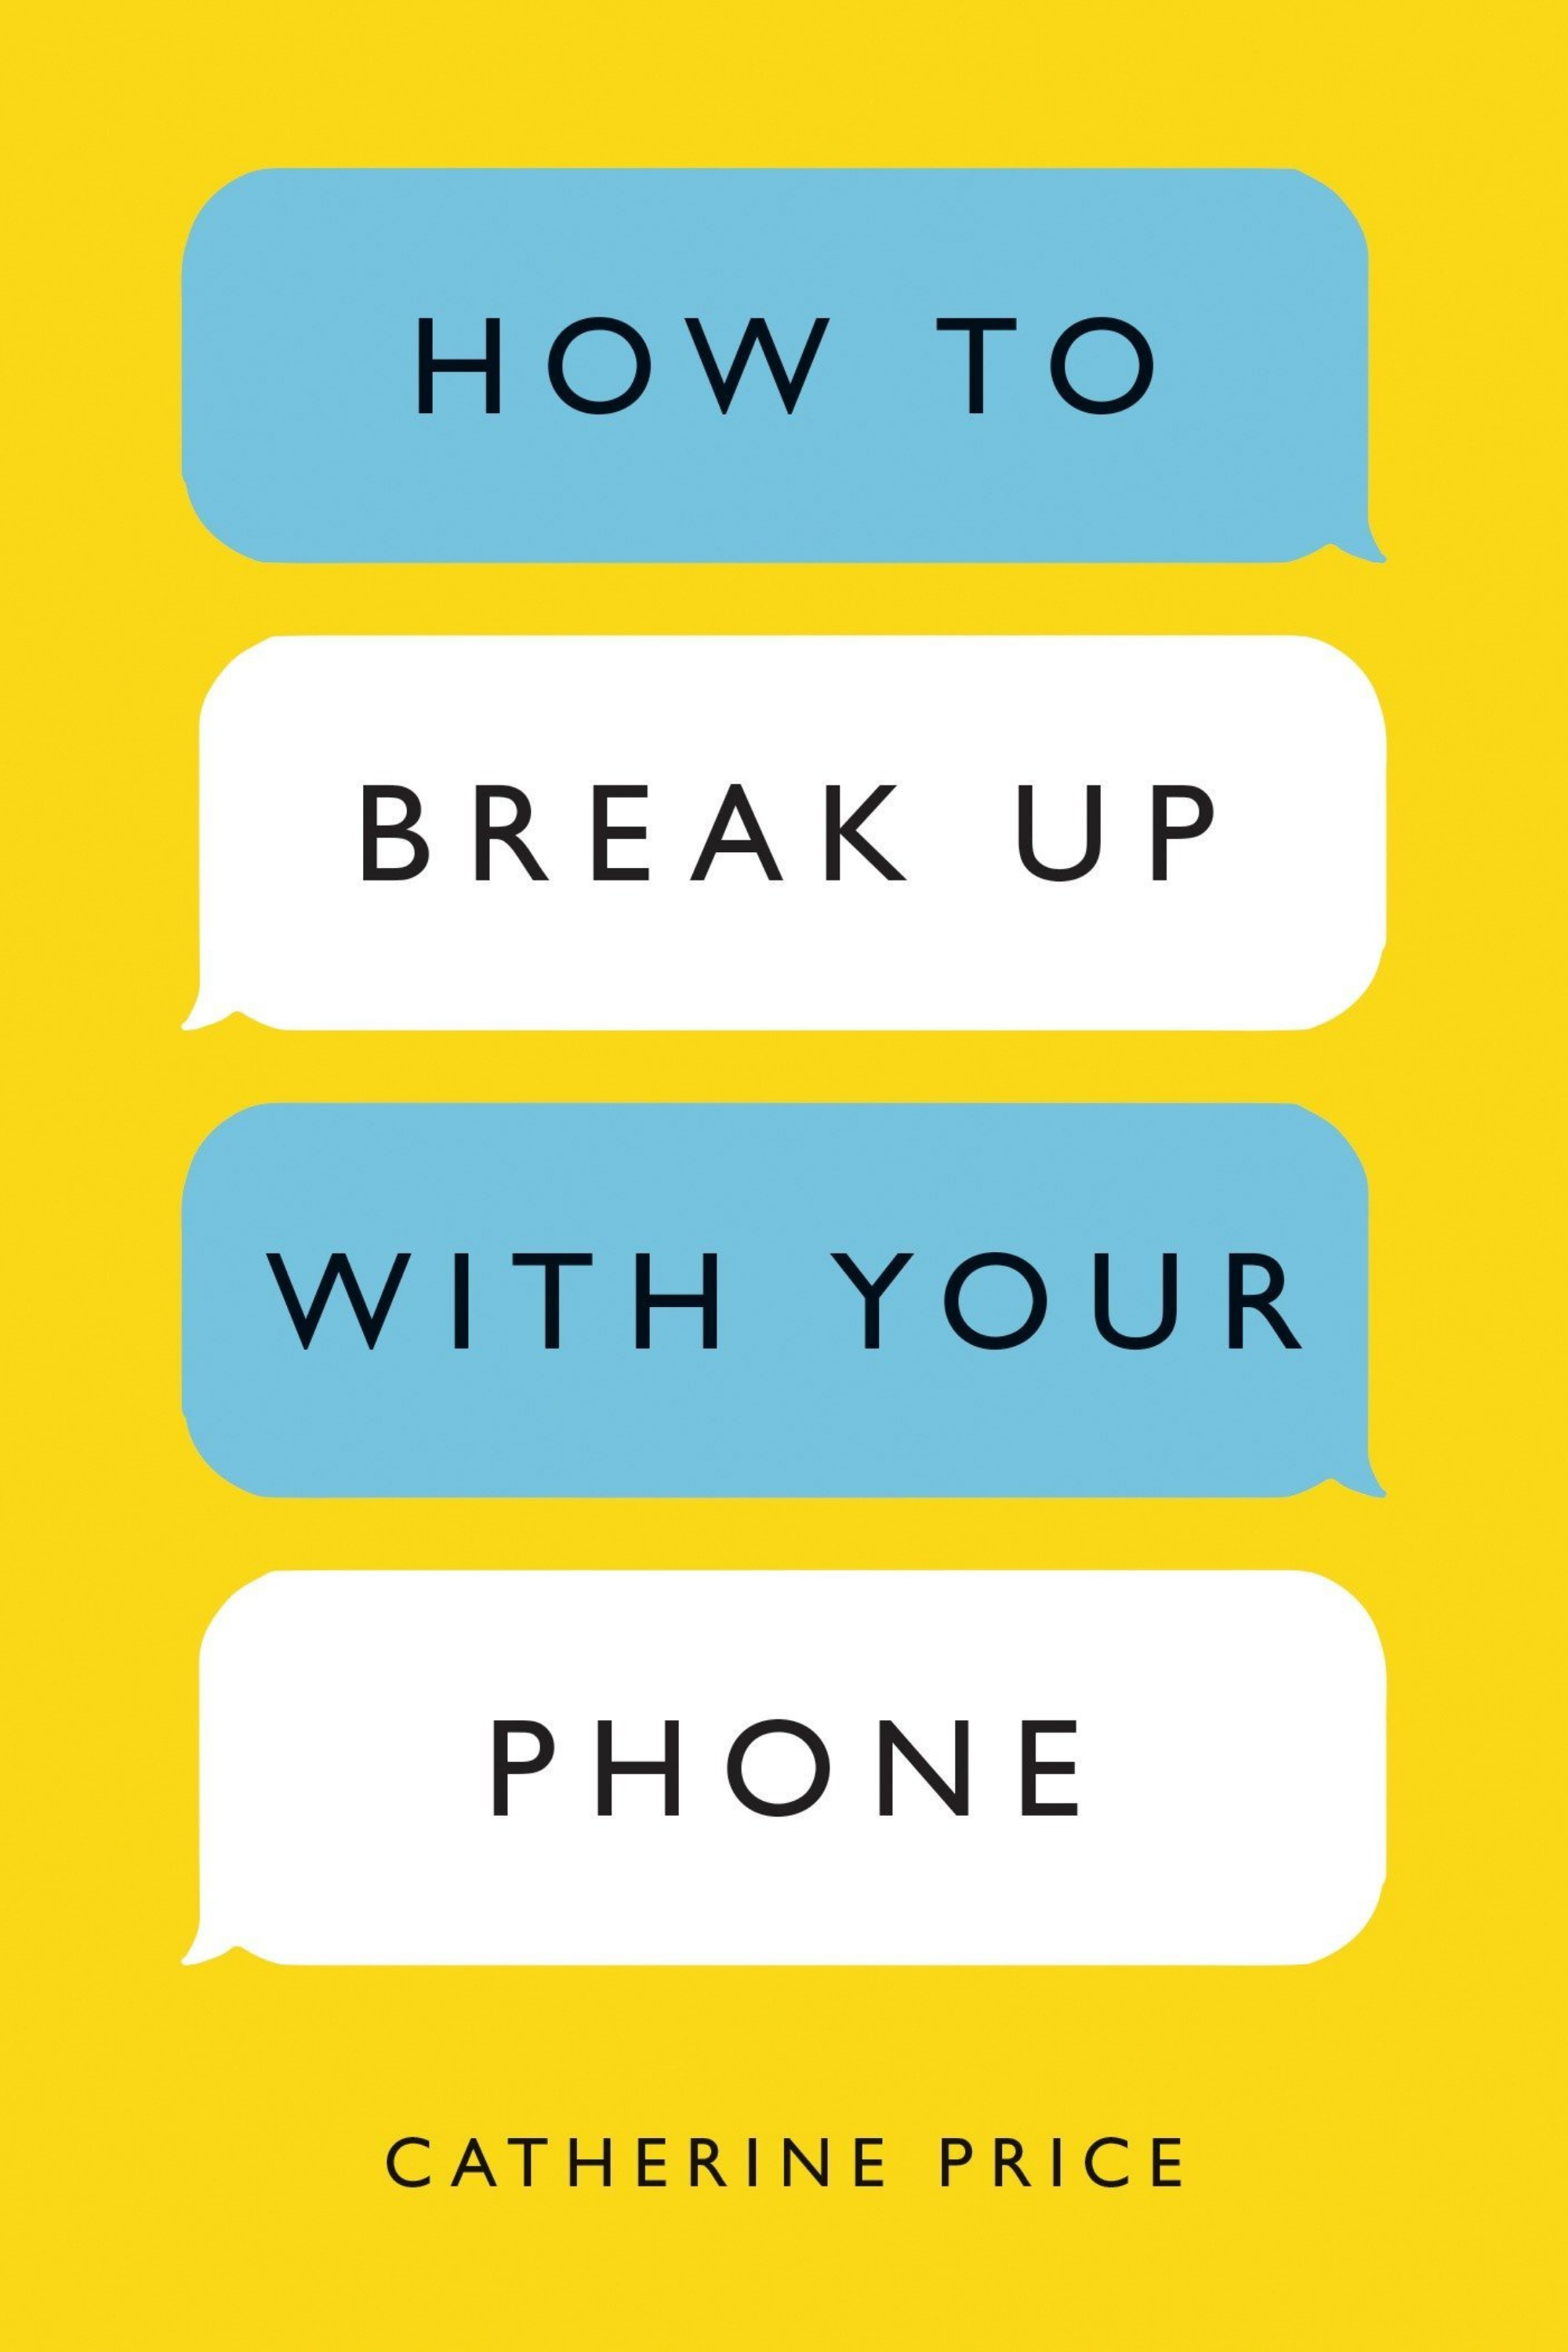 How to Break Up With Your Phone Catherine Price Courtney Elmer.png